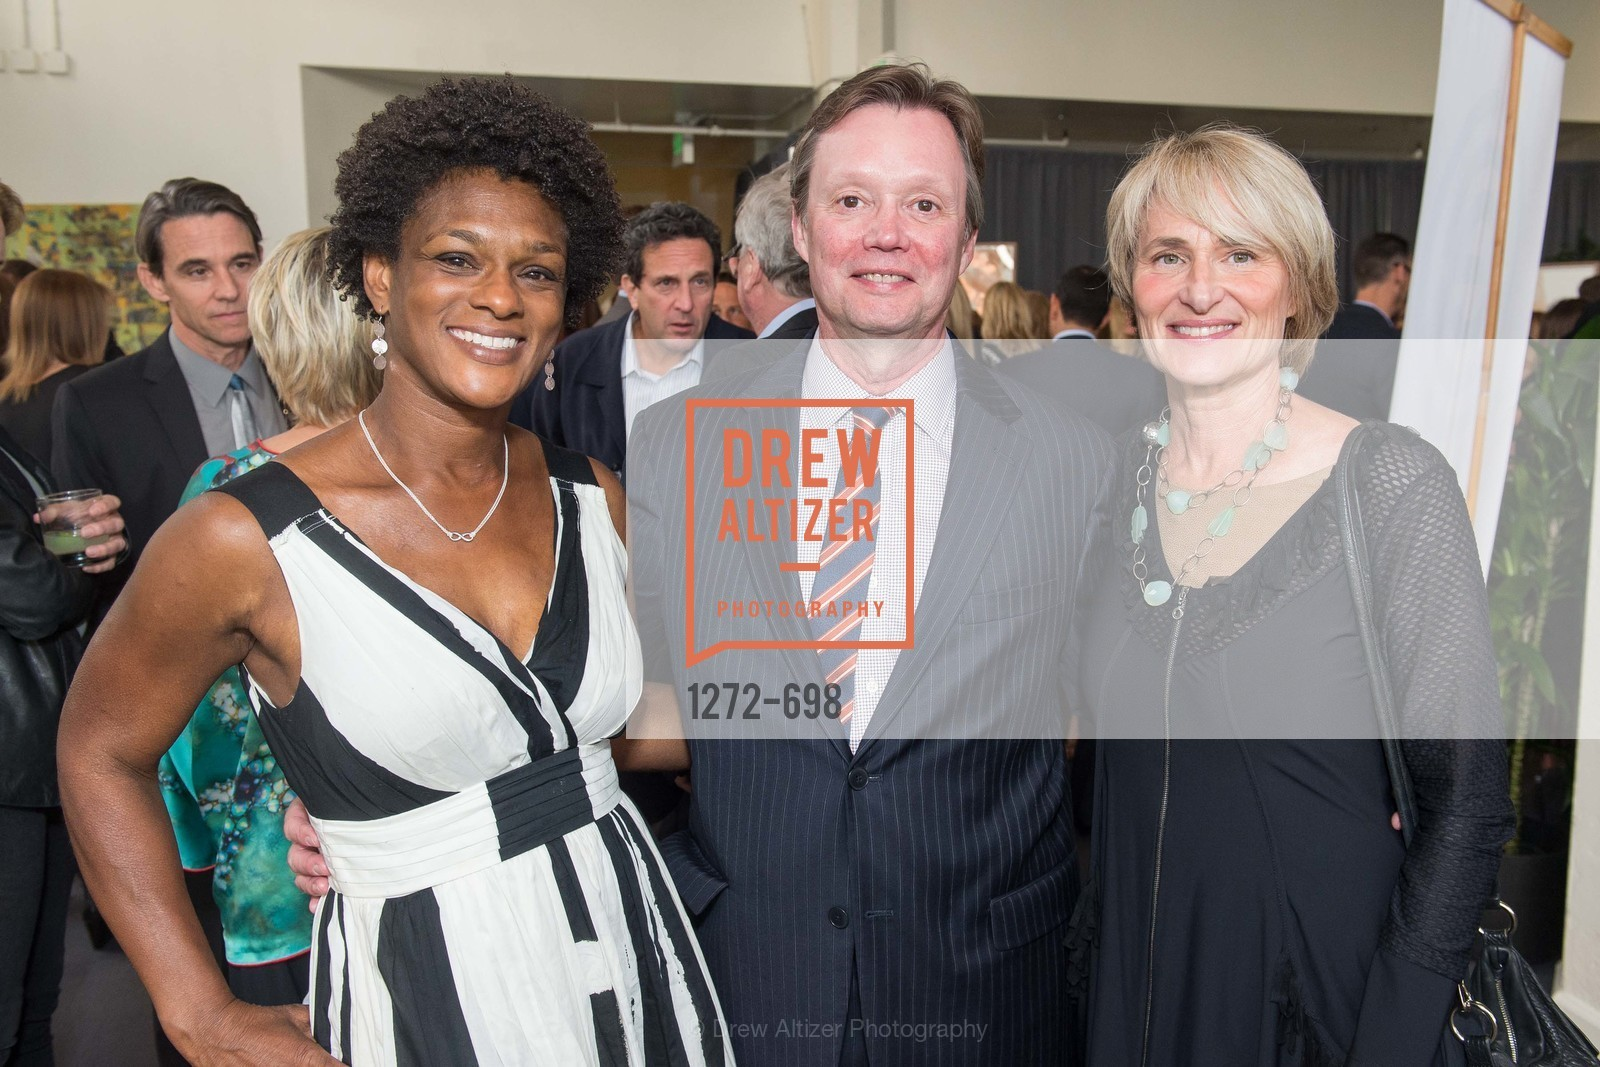 Nadine Decoteau, Craig Cox, EWG's 6th Annual Earth Dinner, US, May 5th, 2015,Drew Altizer, Drew Altizer Photography, full-service agency, private events, San Francisco photographer, photographer california